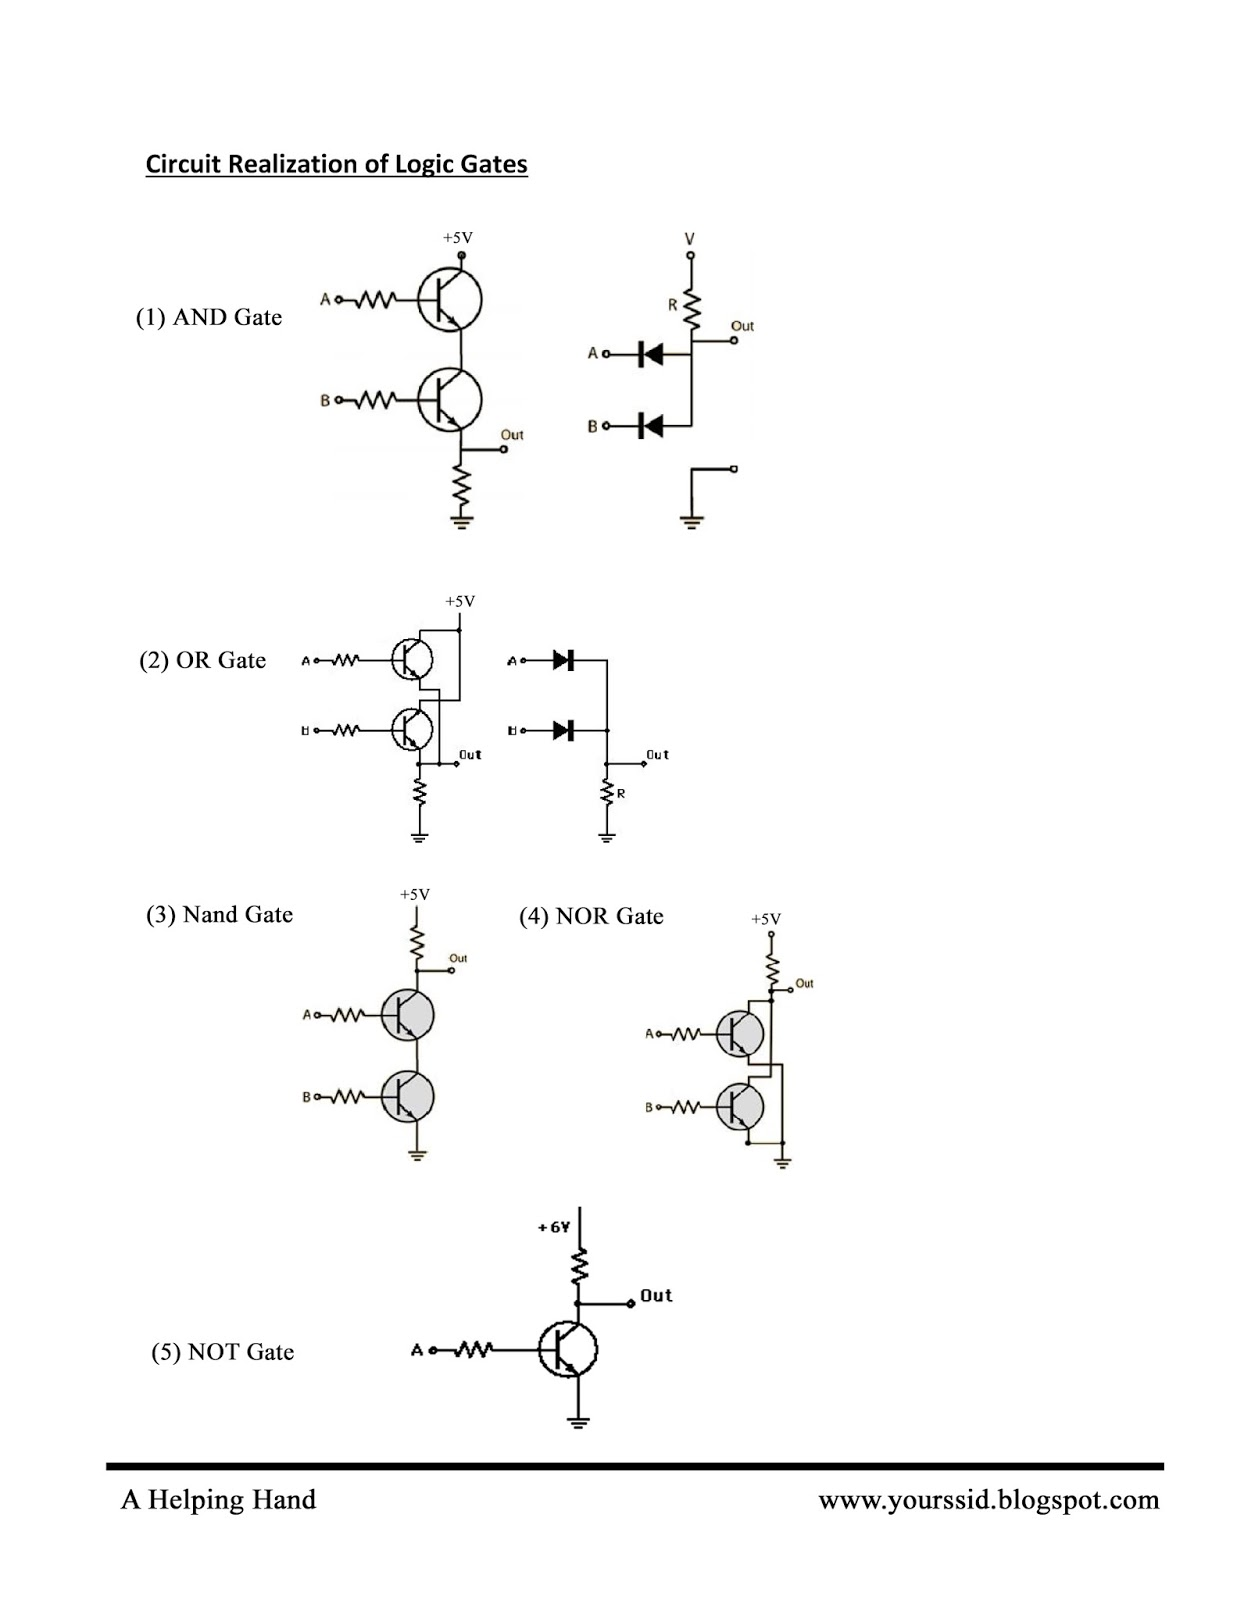 a helping hand circuit realization of logic gates important for jee main [ 1237 x 1600 Pixel ]